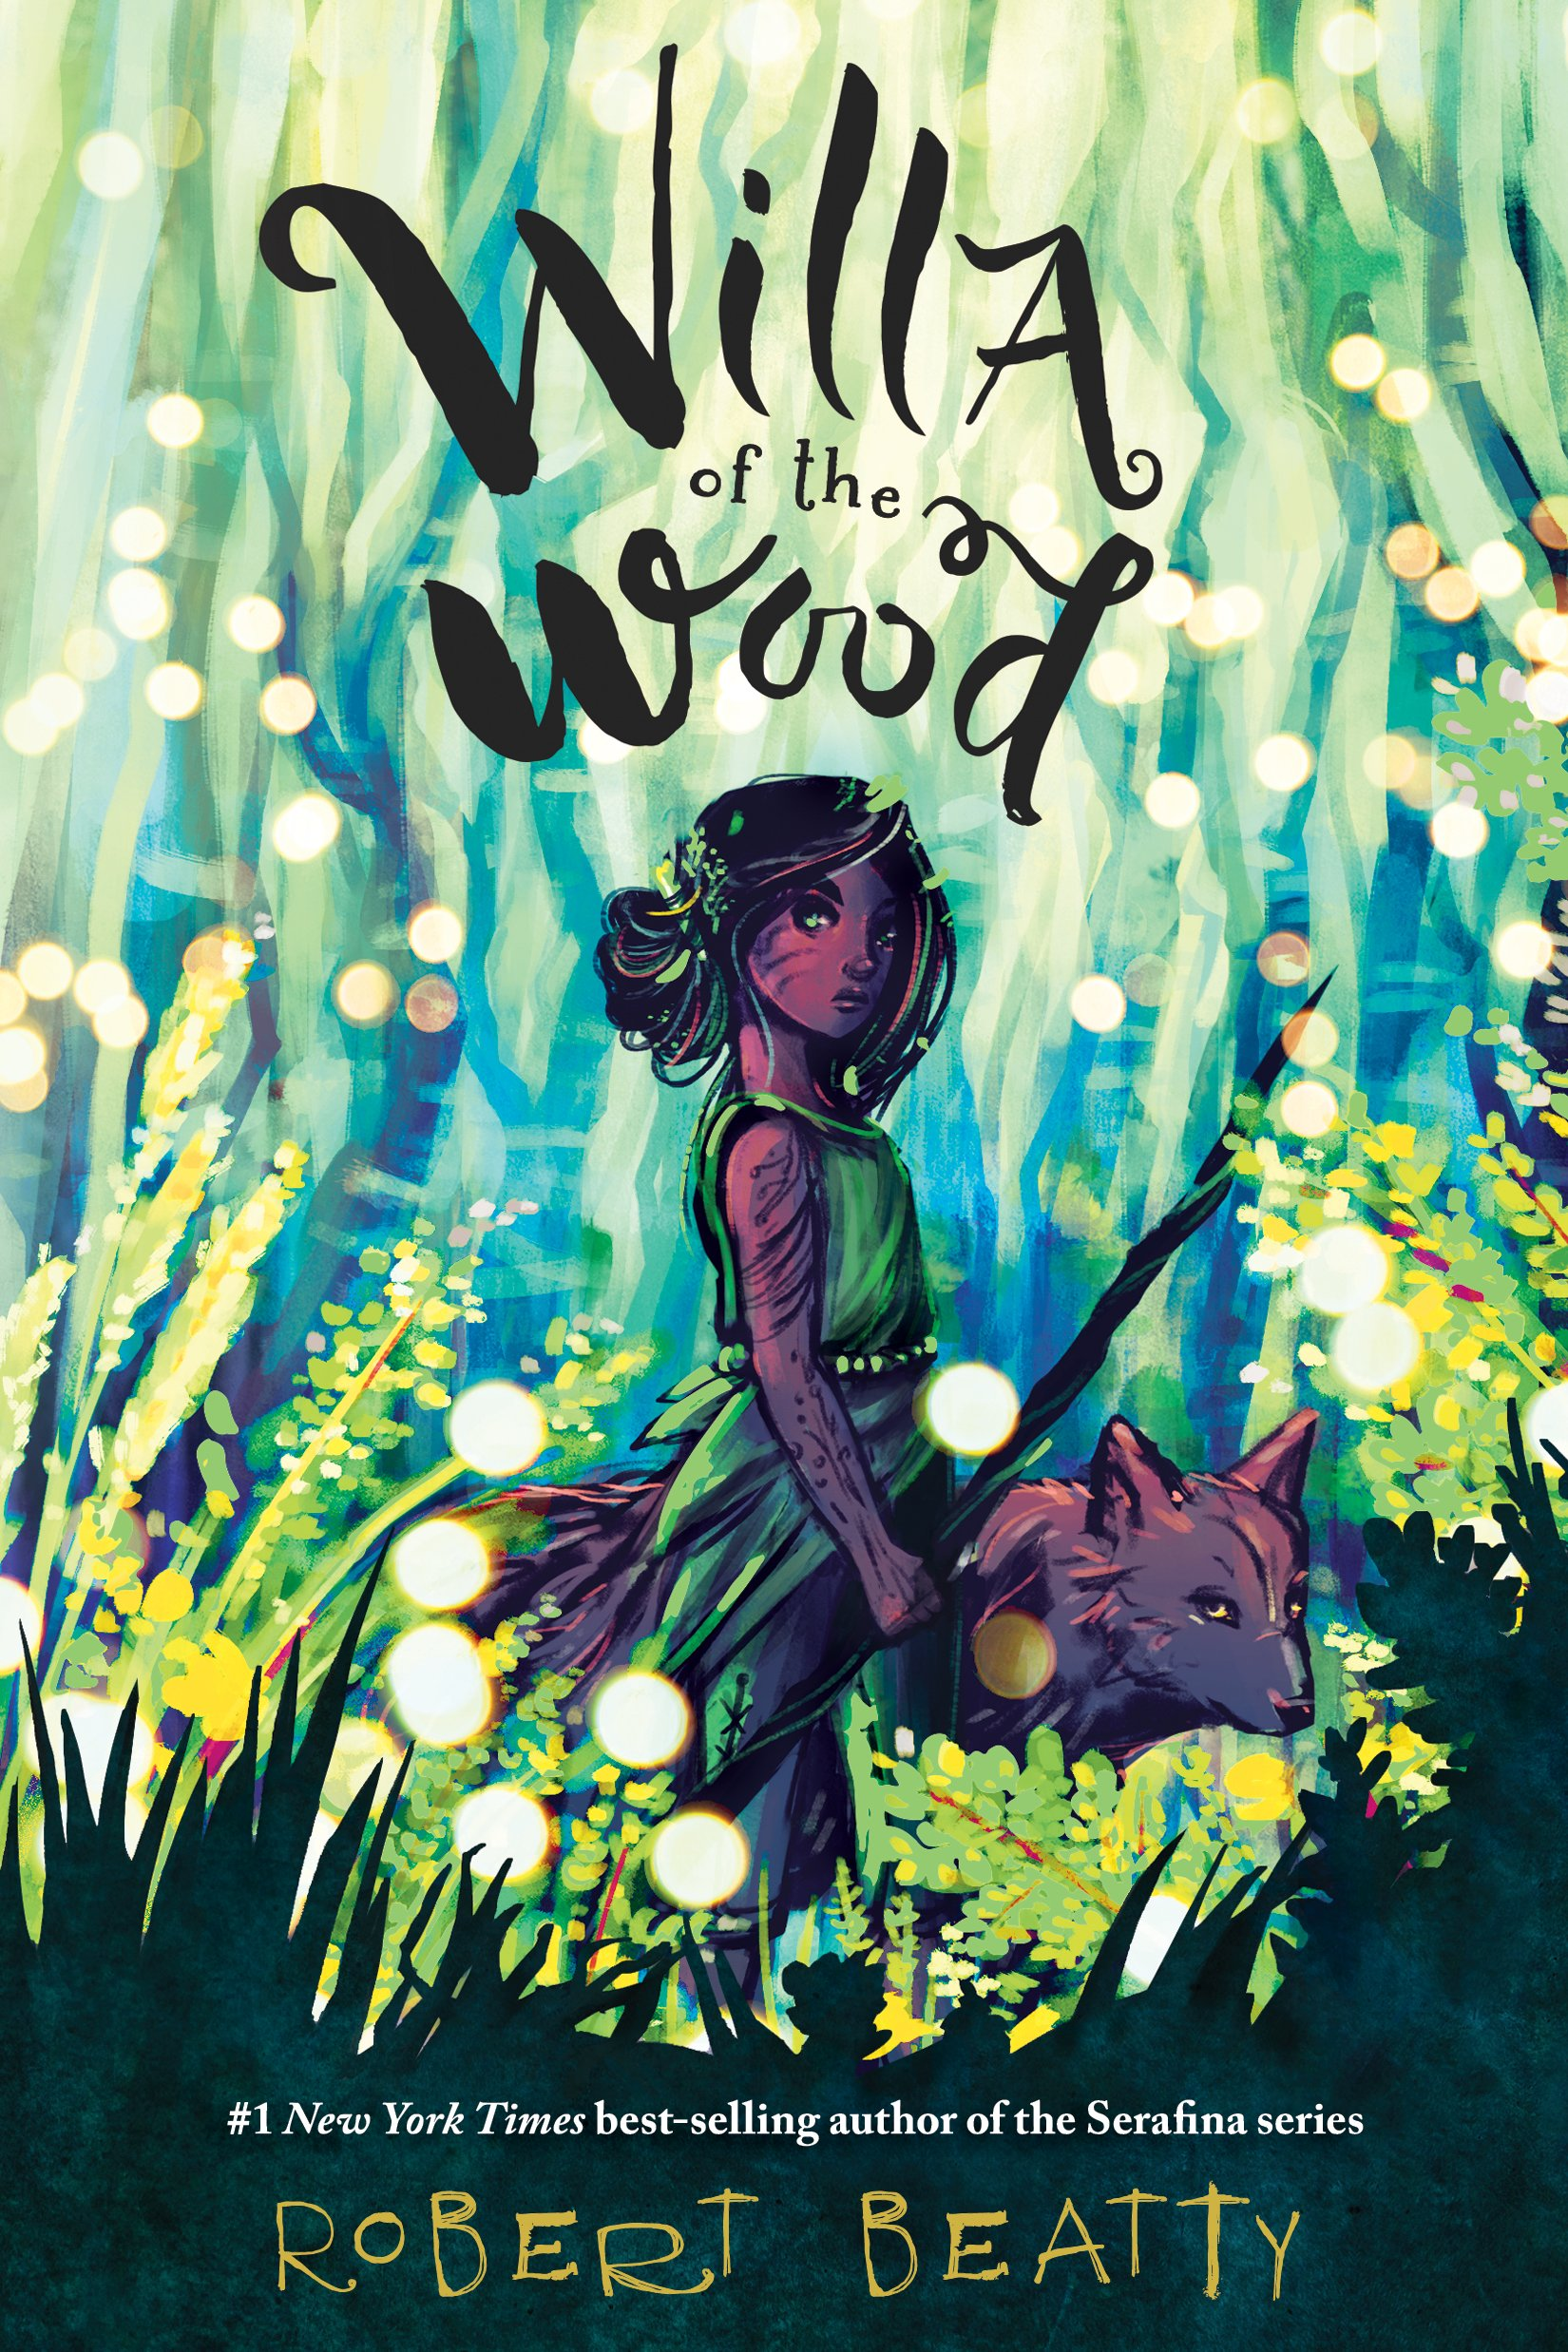 Willa of the Wood: Amazon.es: Robert Beatty: Libros en idiomas extranjeros